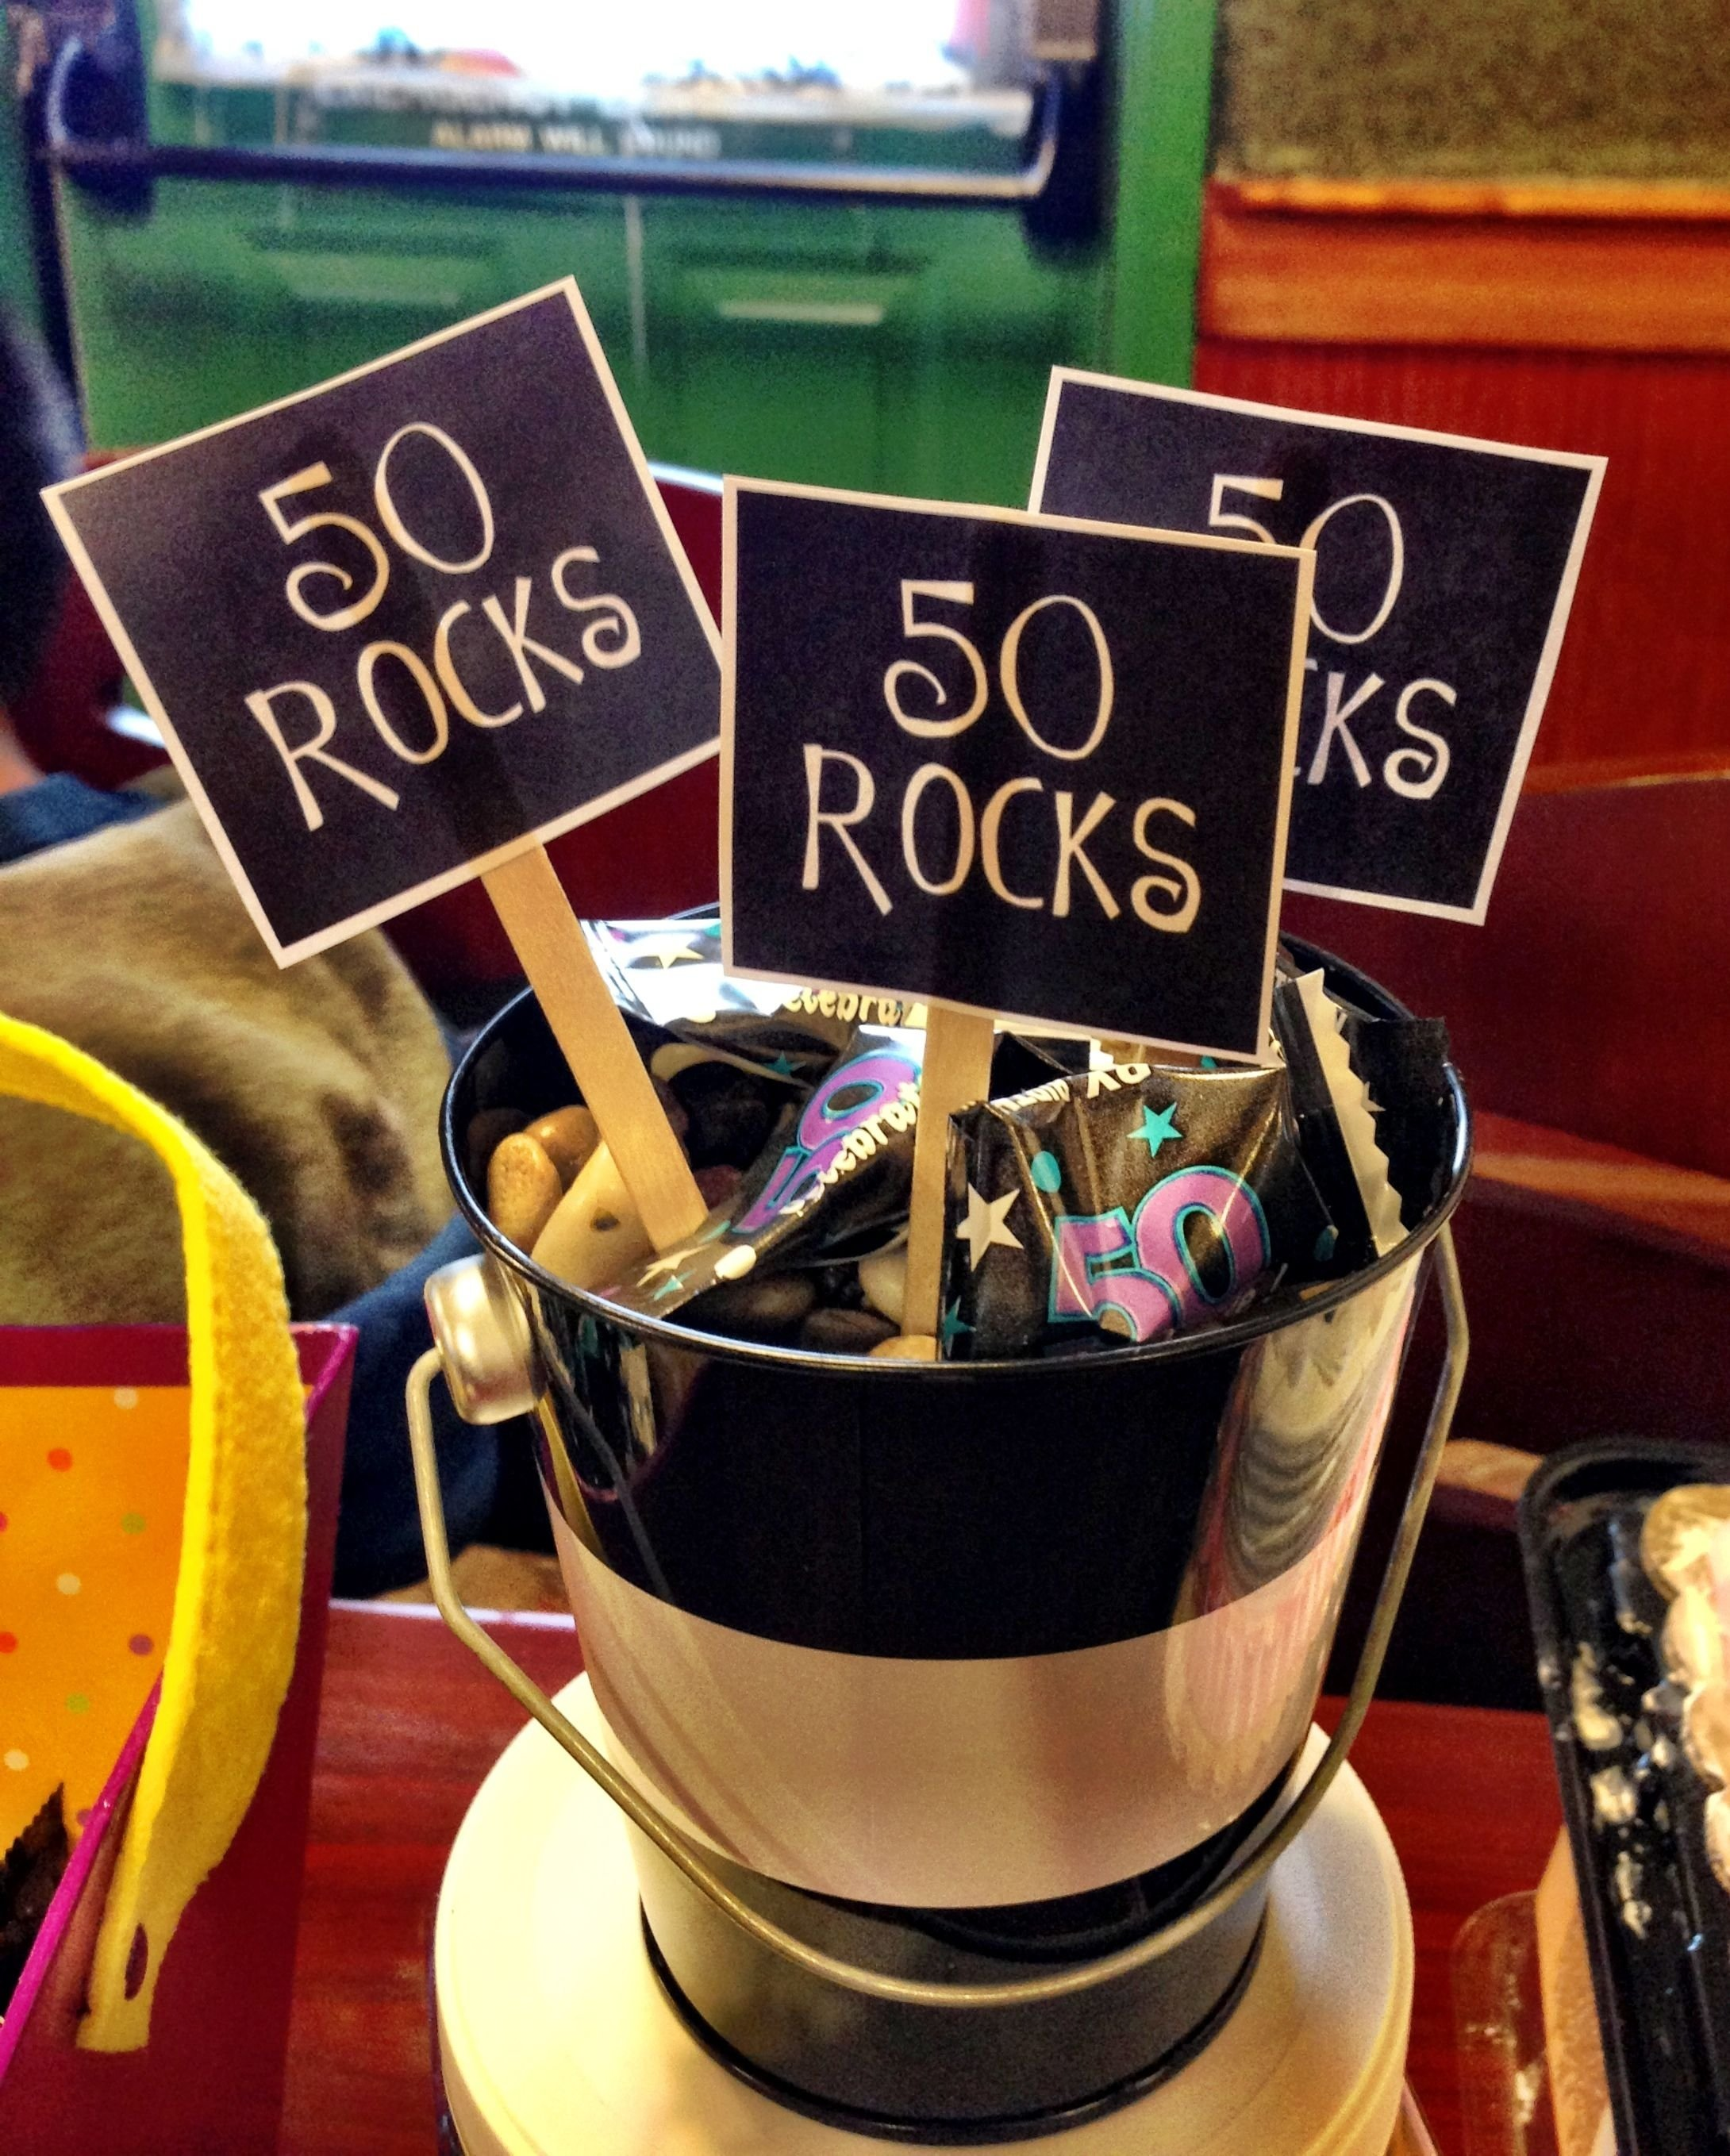 10 Great 50 Year Old Party Ideas 50 rocks birthday present ideas for 50 year old craftyideas 2020